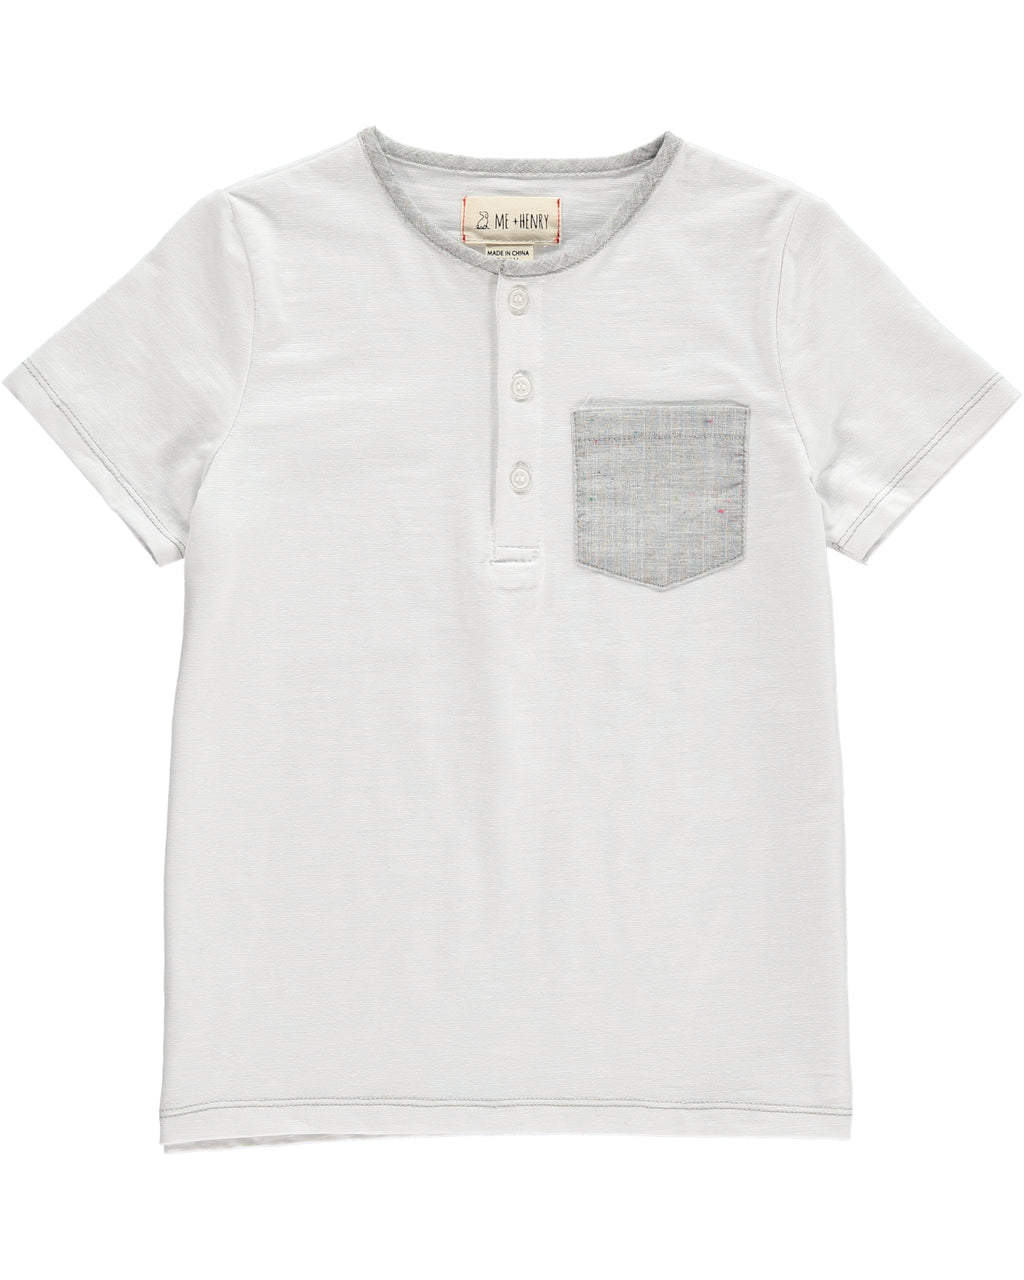 White Henly Tee with Grey Pocket